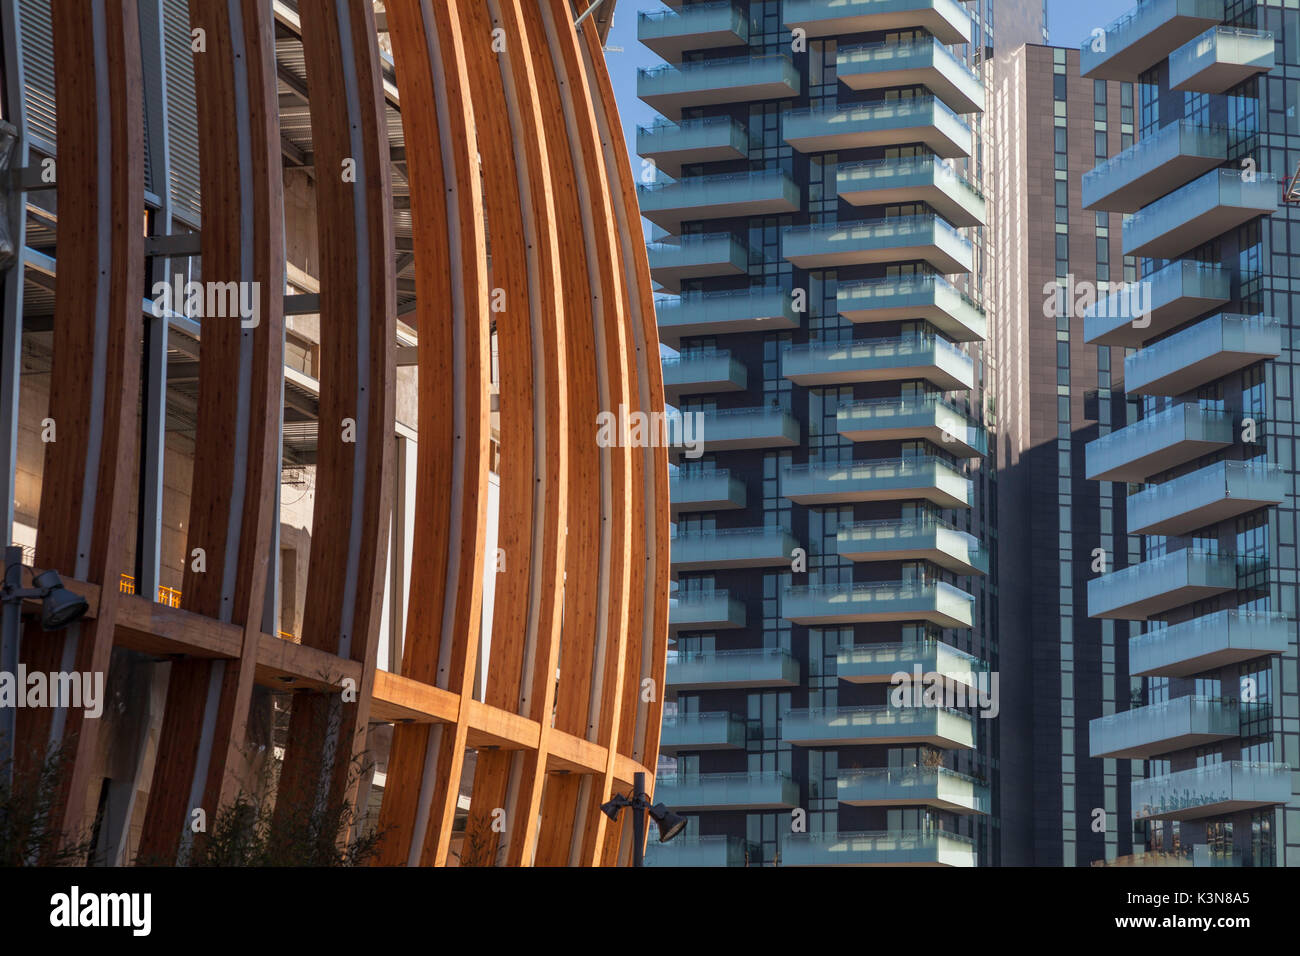 Milan, Lombardy, Italy. Some modern architectures in Gae Aulenti square. - Stock Image